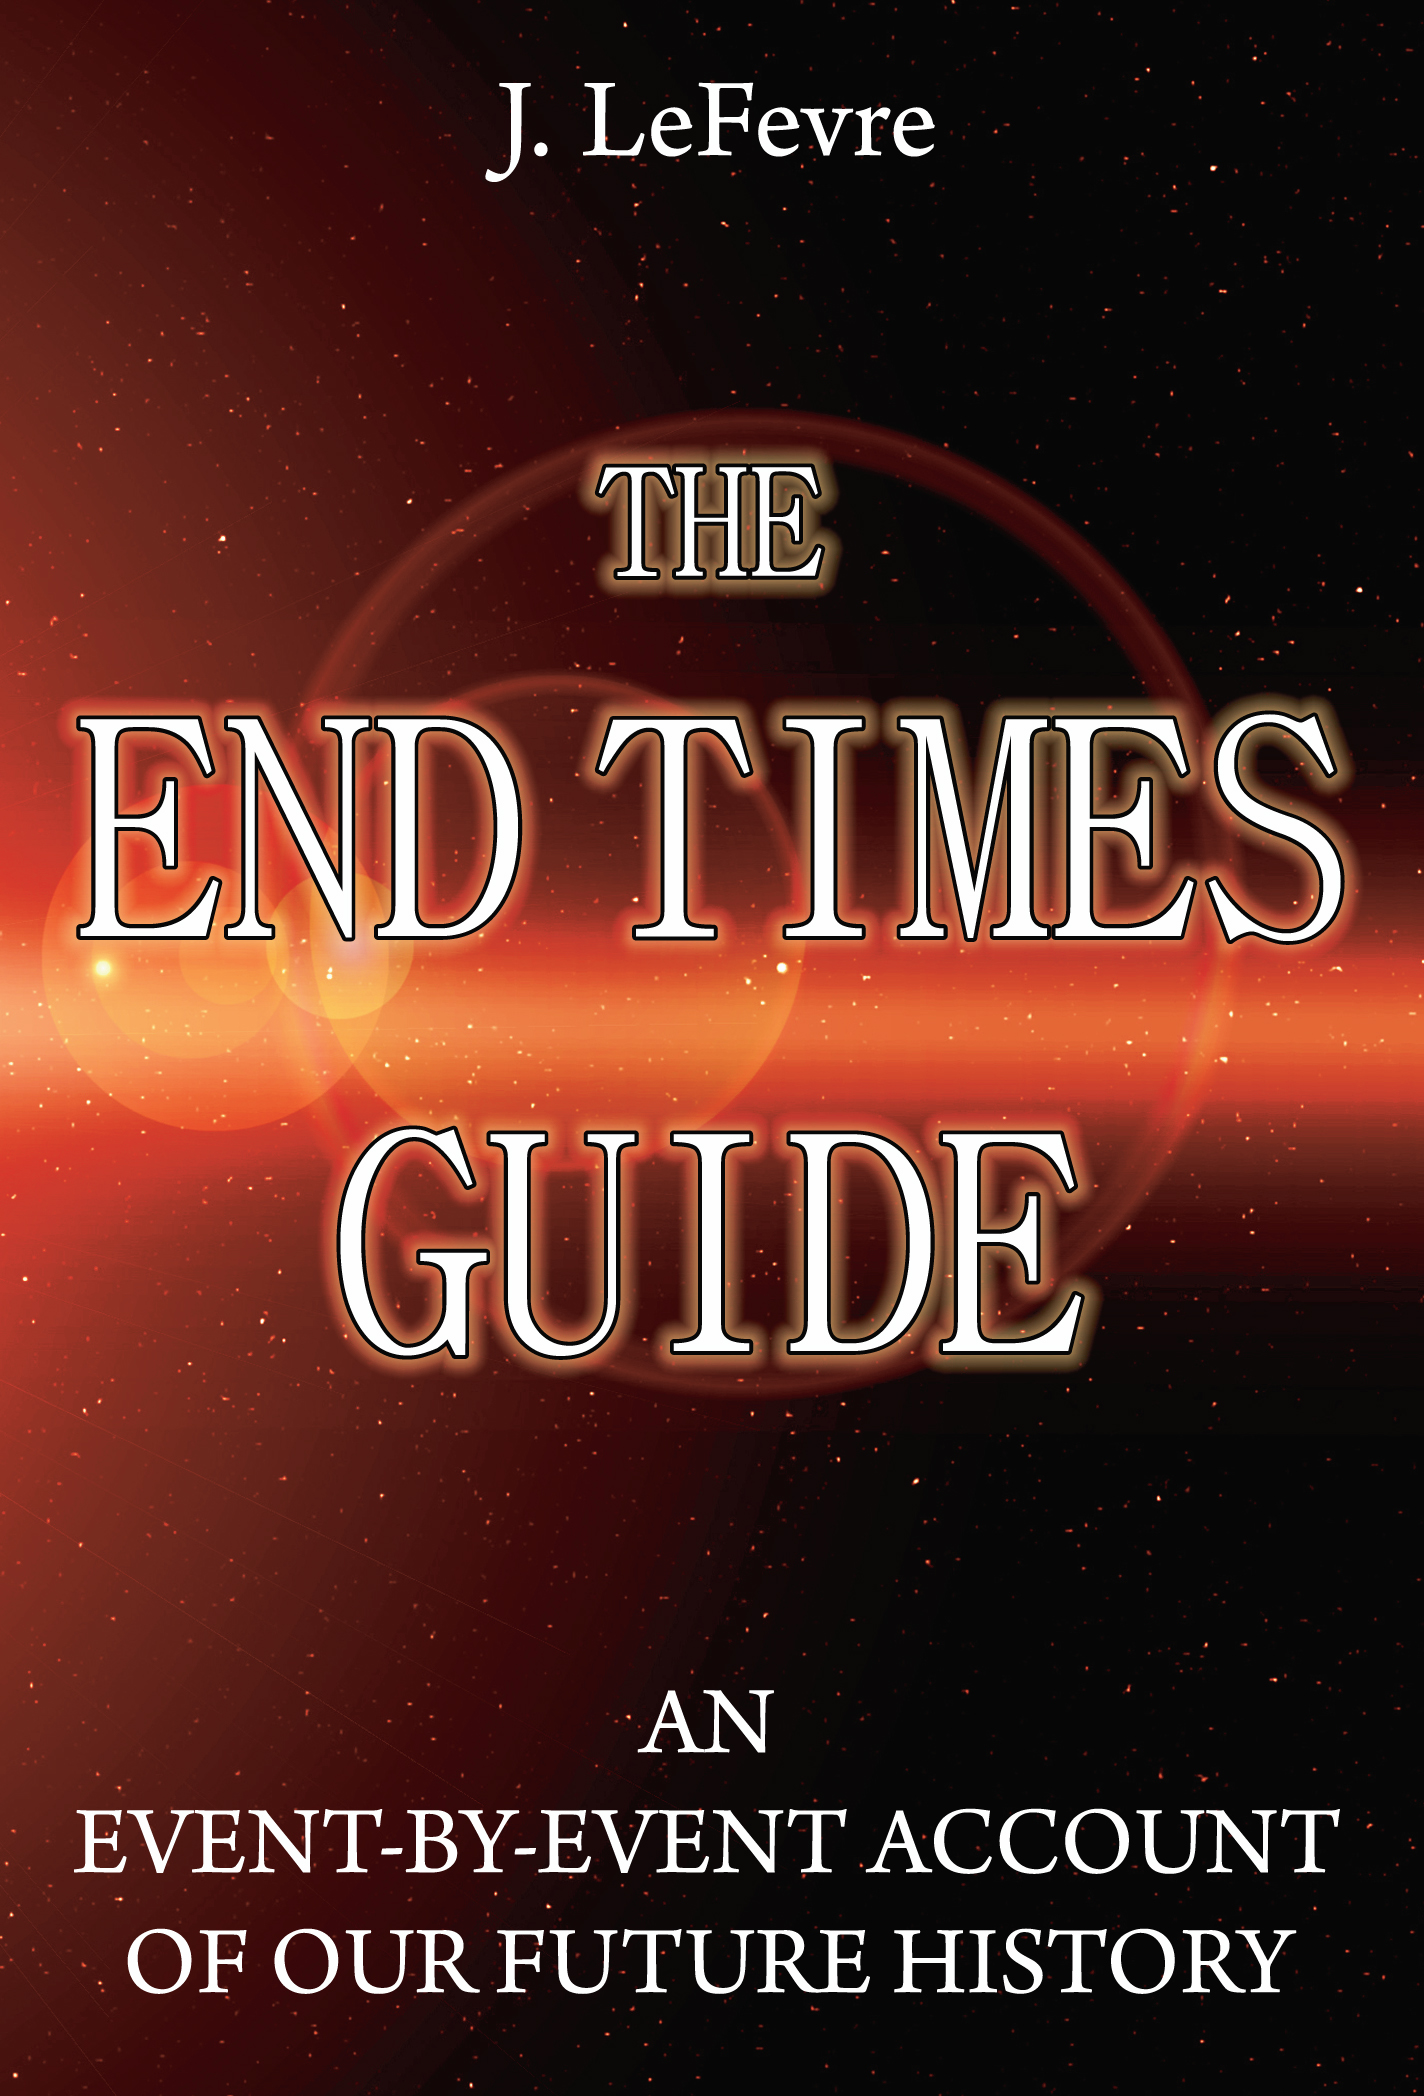 The End Times Guide: An Event-by-Event Account of Our Future History